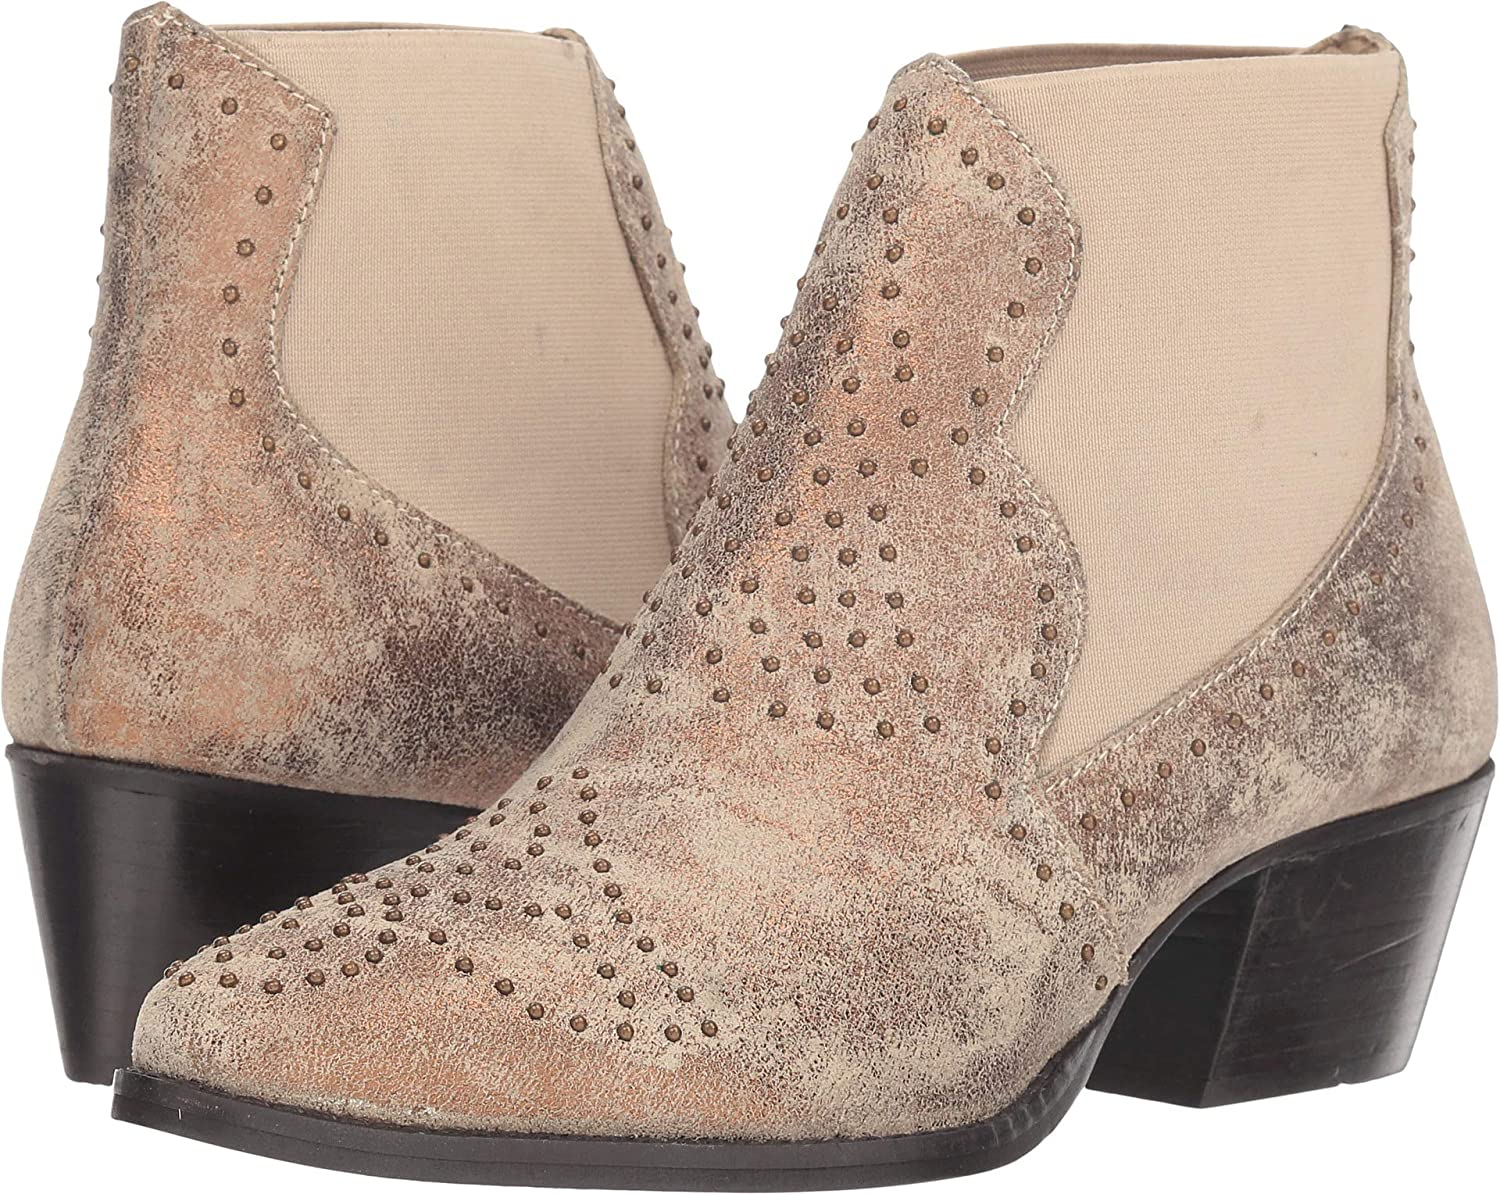 Charles by Charles David Womens Zach Studded Bootie